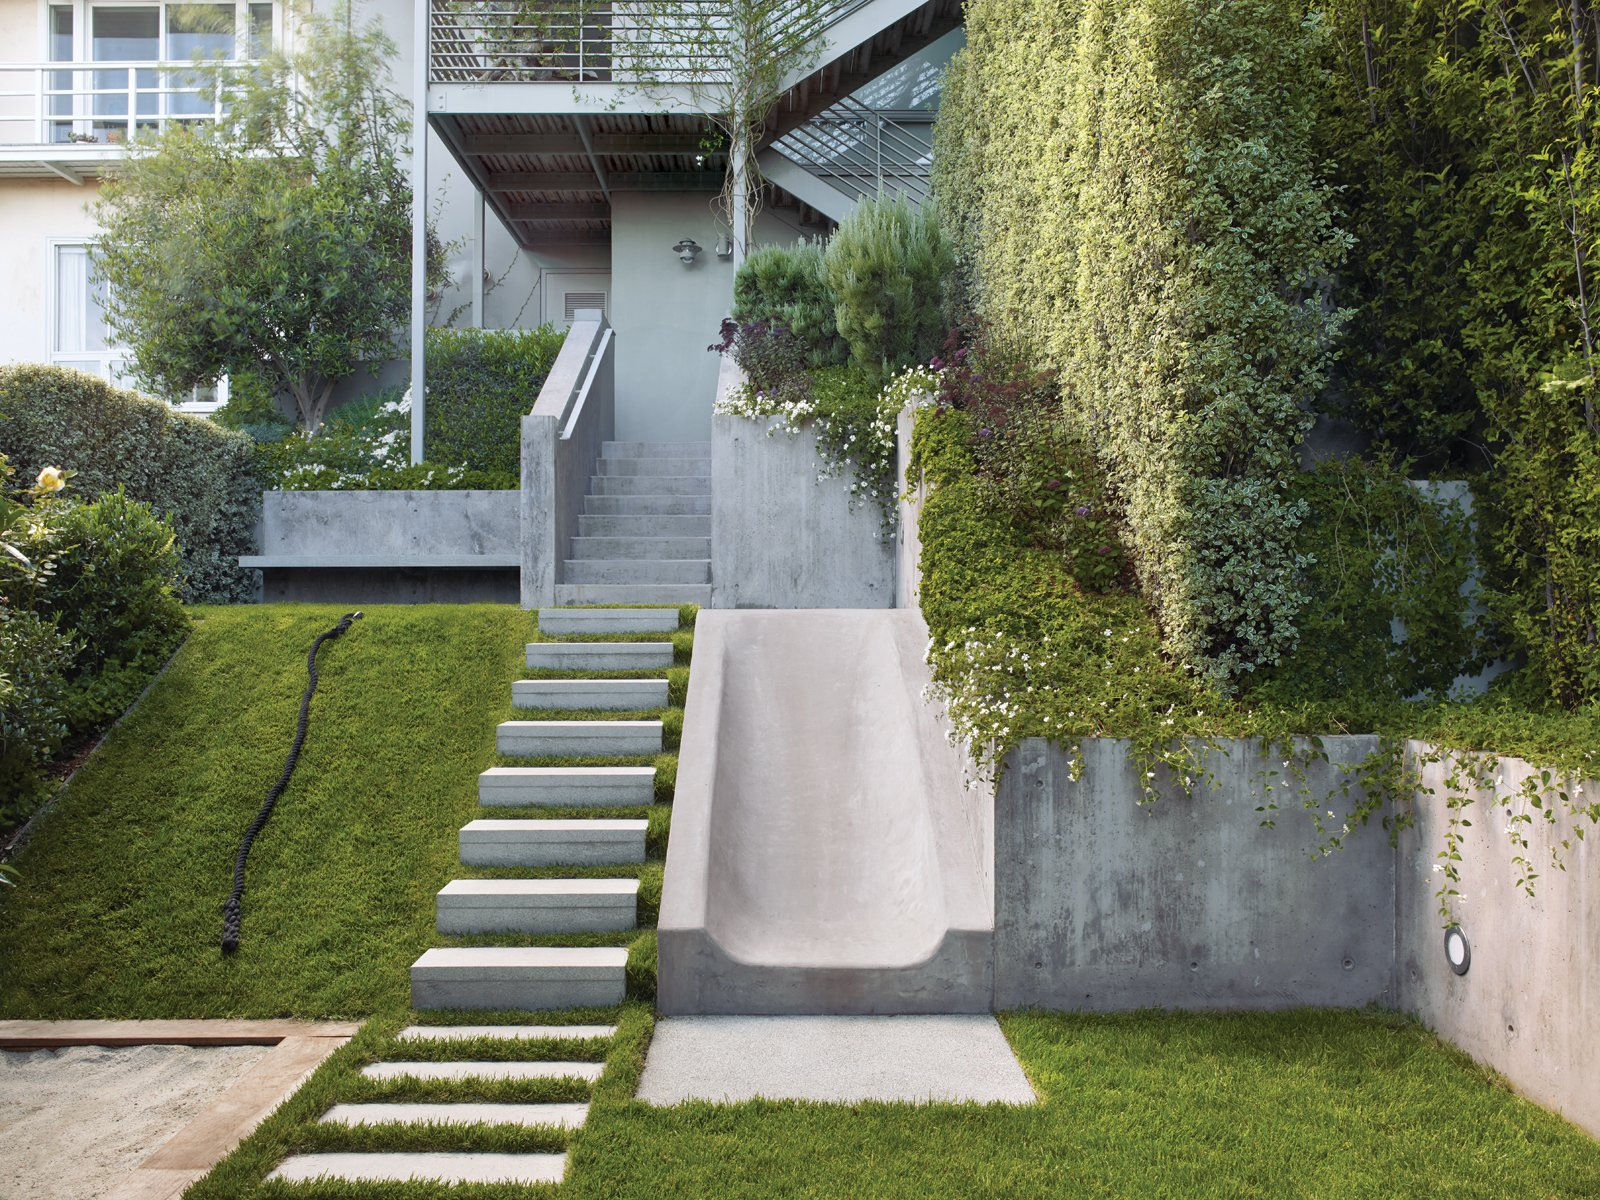 Rather than resist the natural slope of the Buena Vista Heights backyard, landscape architect Eric Blasen composed a well-considered, minimal, multiterraced space. Accent details, like the flat handrail and stone stairs, mirror those repeated both inside the home and out front, respectively; Blasen worked directly with architect Tim Gemmill to ensure a cohesive feel between the spaces. Photo by Marion Brenner. Tagged: Outdoor.  Photo 4 of 4 in Good Clean Fun